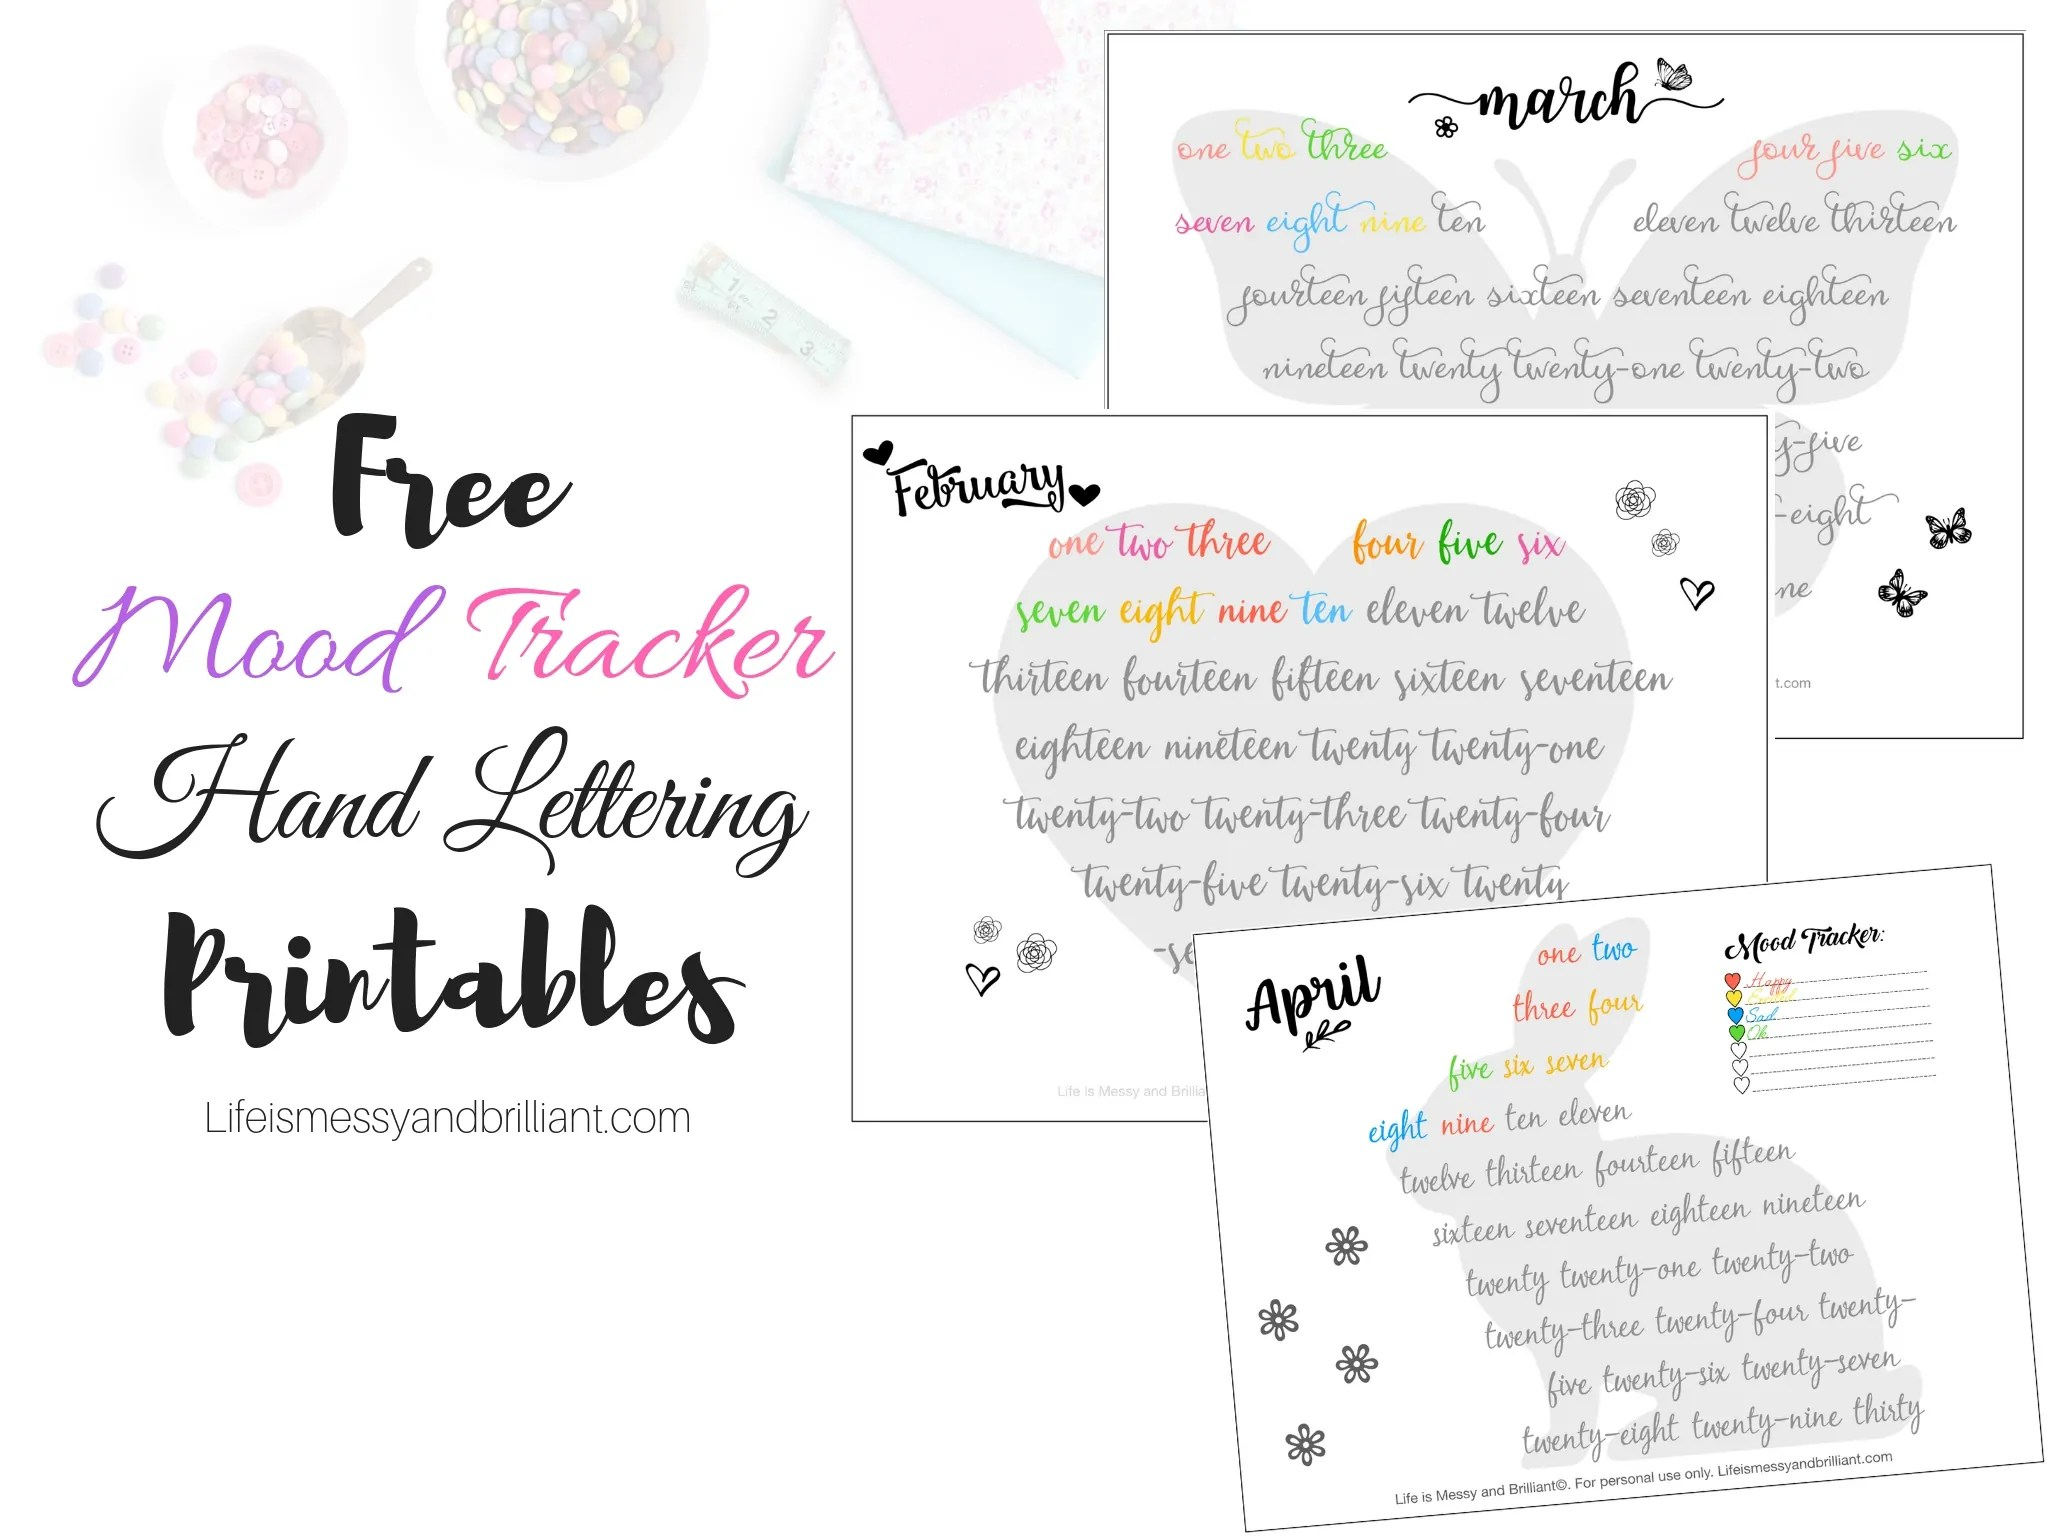 The Best Free Mood Tracker Printable